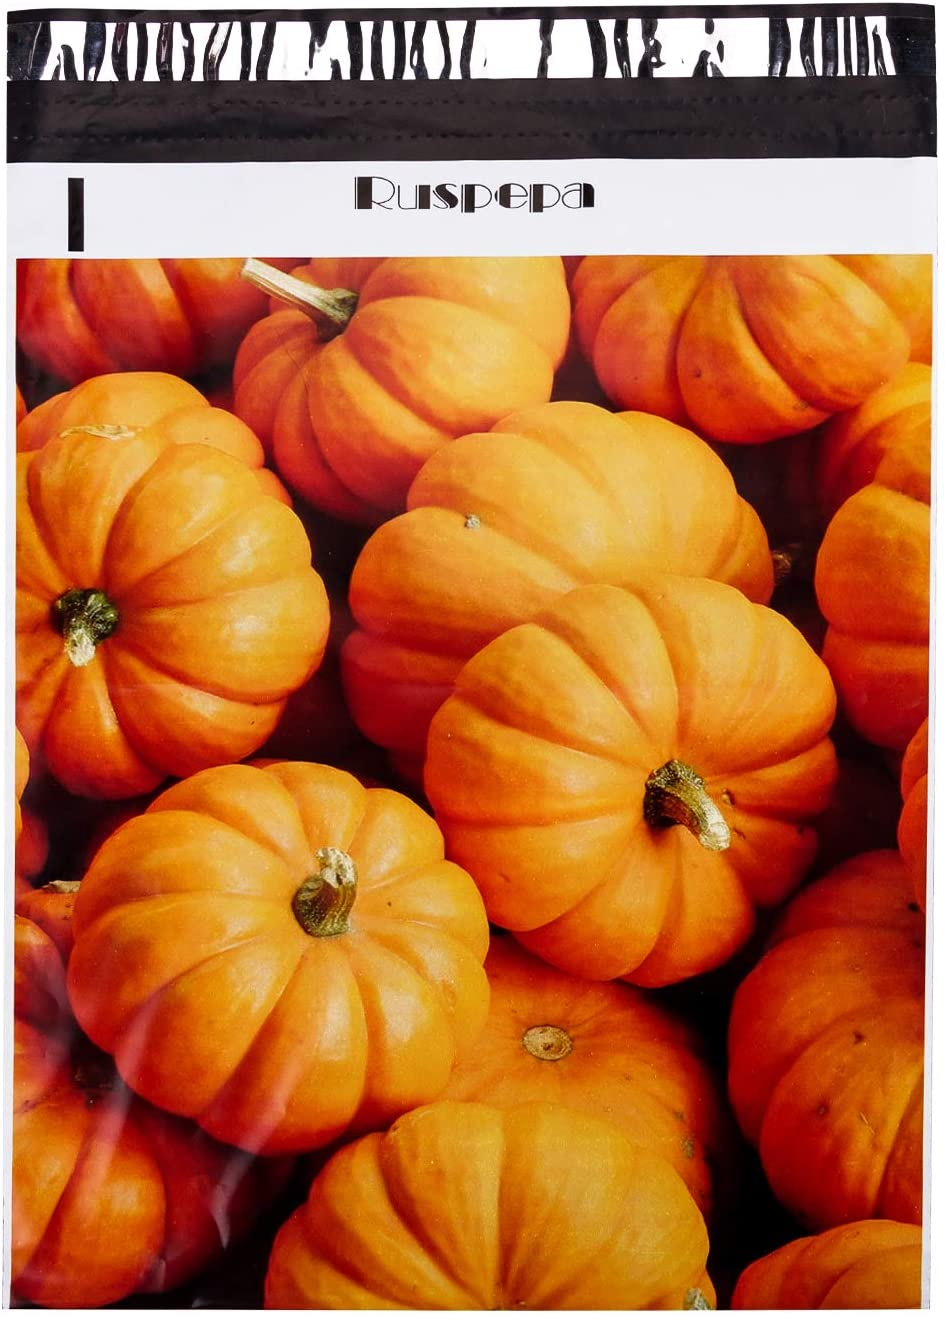 RUSPEPA Halloween Poly Mailers 12x15.5 Pumpkin Patterns 3 Mil Thick Mailing Envelopes Self Sealing Shipping Bags - 50 Pack